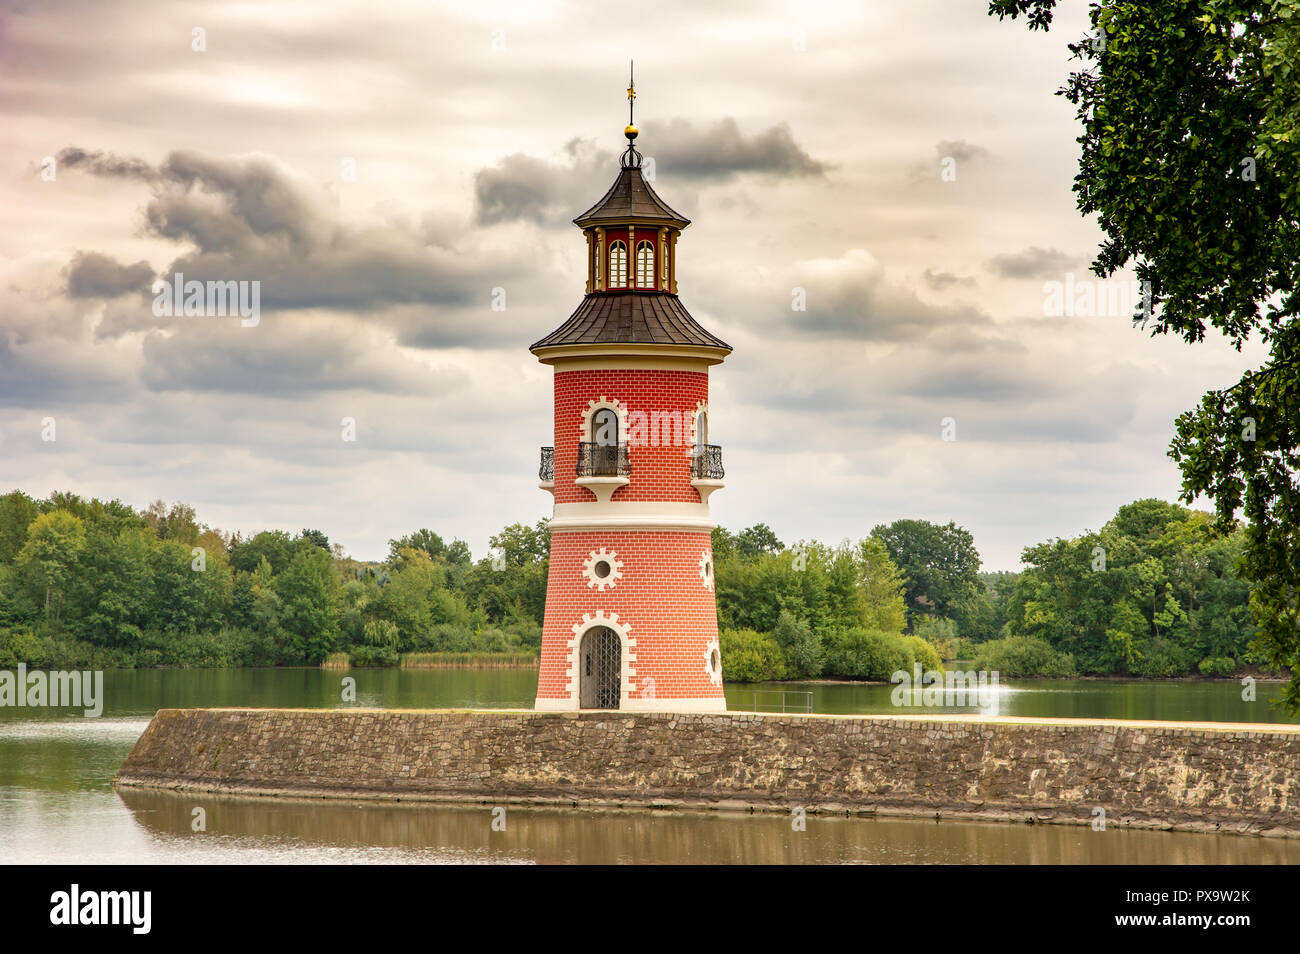 MORITZBURG, GERMANY - AUGUST 21: Lighthouse in the public park of the castle of  Moritzburg, Germnay on August 21, 2018. Stock Photo